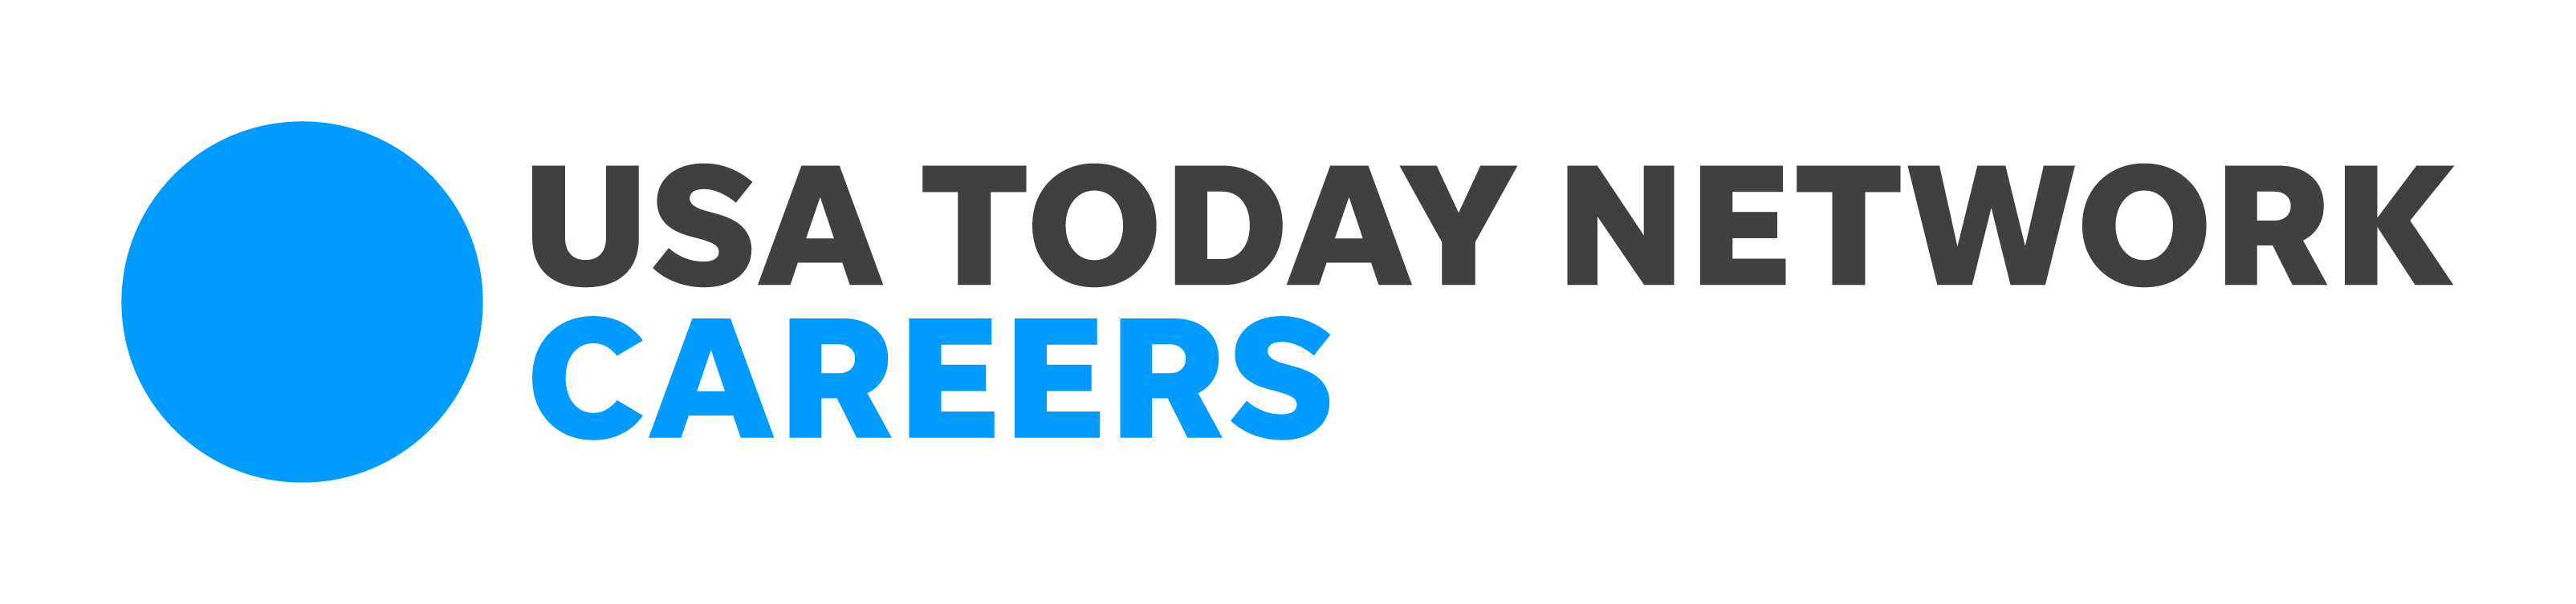 Gannett/USA TODAY NETWORK Careers